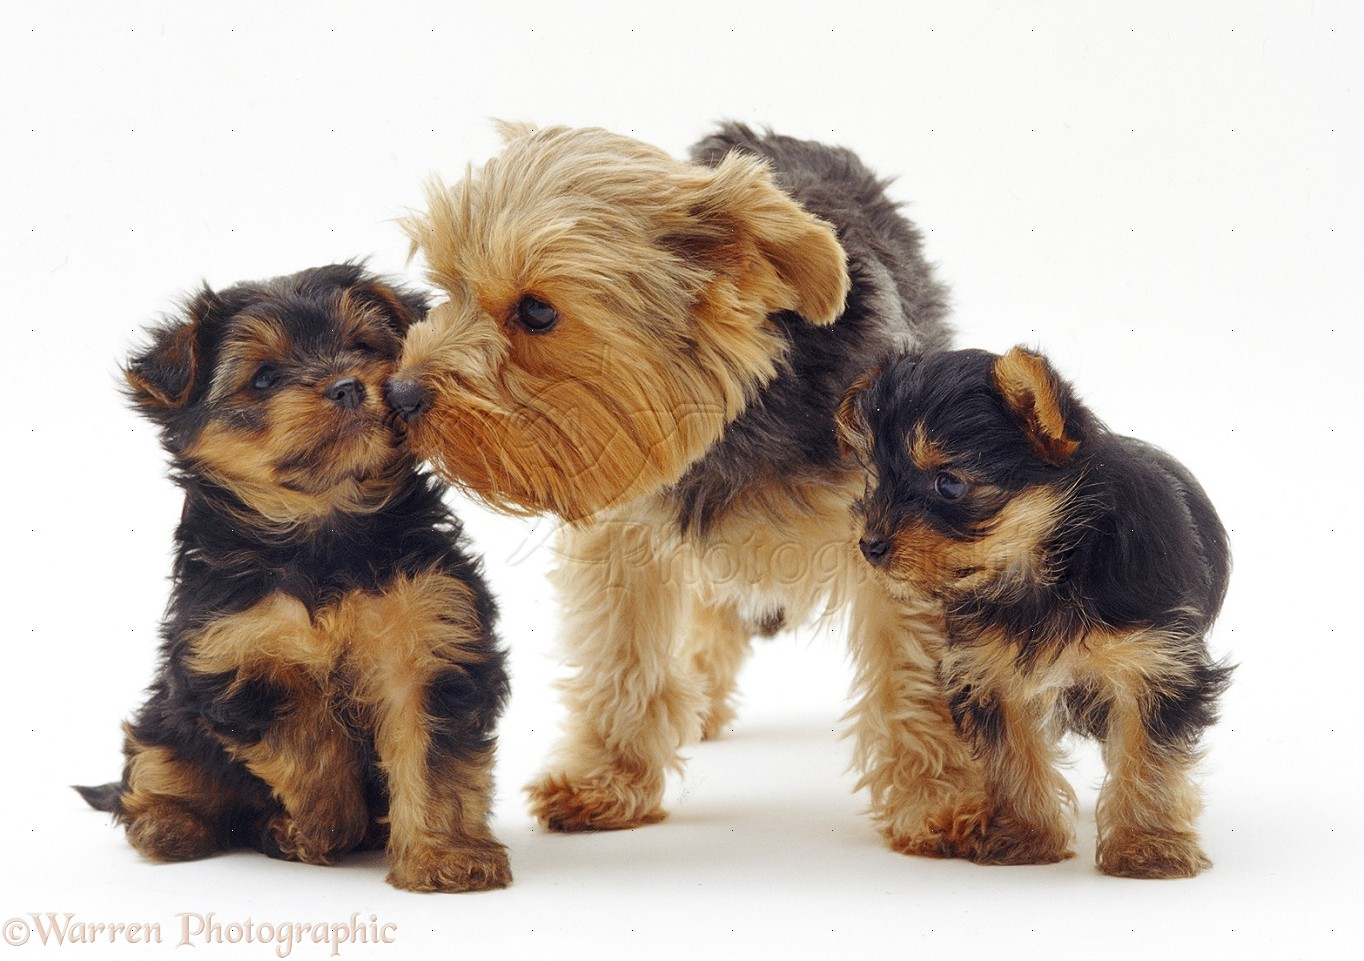 print a google map with 16326 Yorkshire Terrier With Pups on Contact Us further Hlak Kar Thangan Khxng Khxmphiwtexr additionally Islam Maps also 16326 Yorkshire Terrier With Pups further Patagonia.